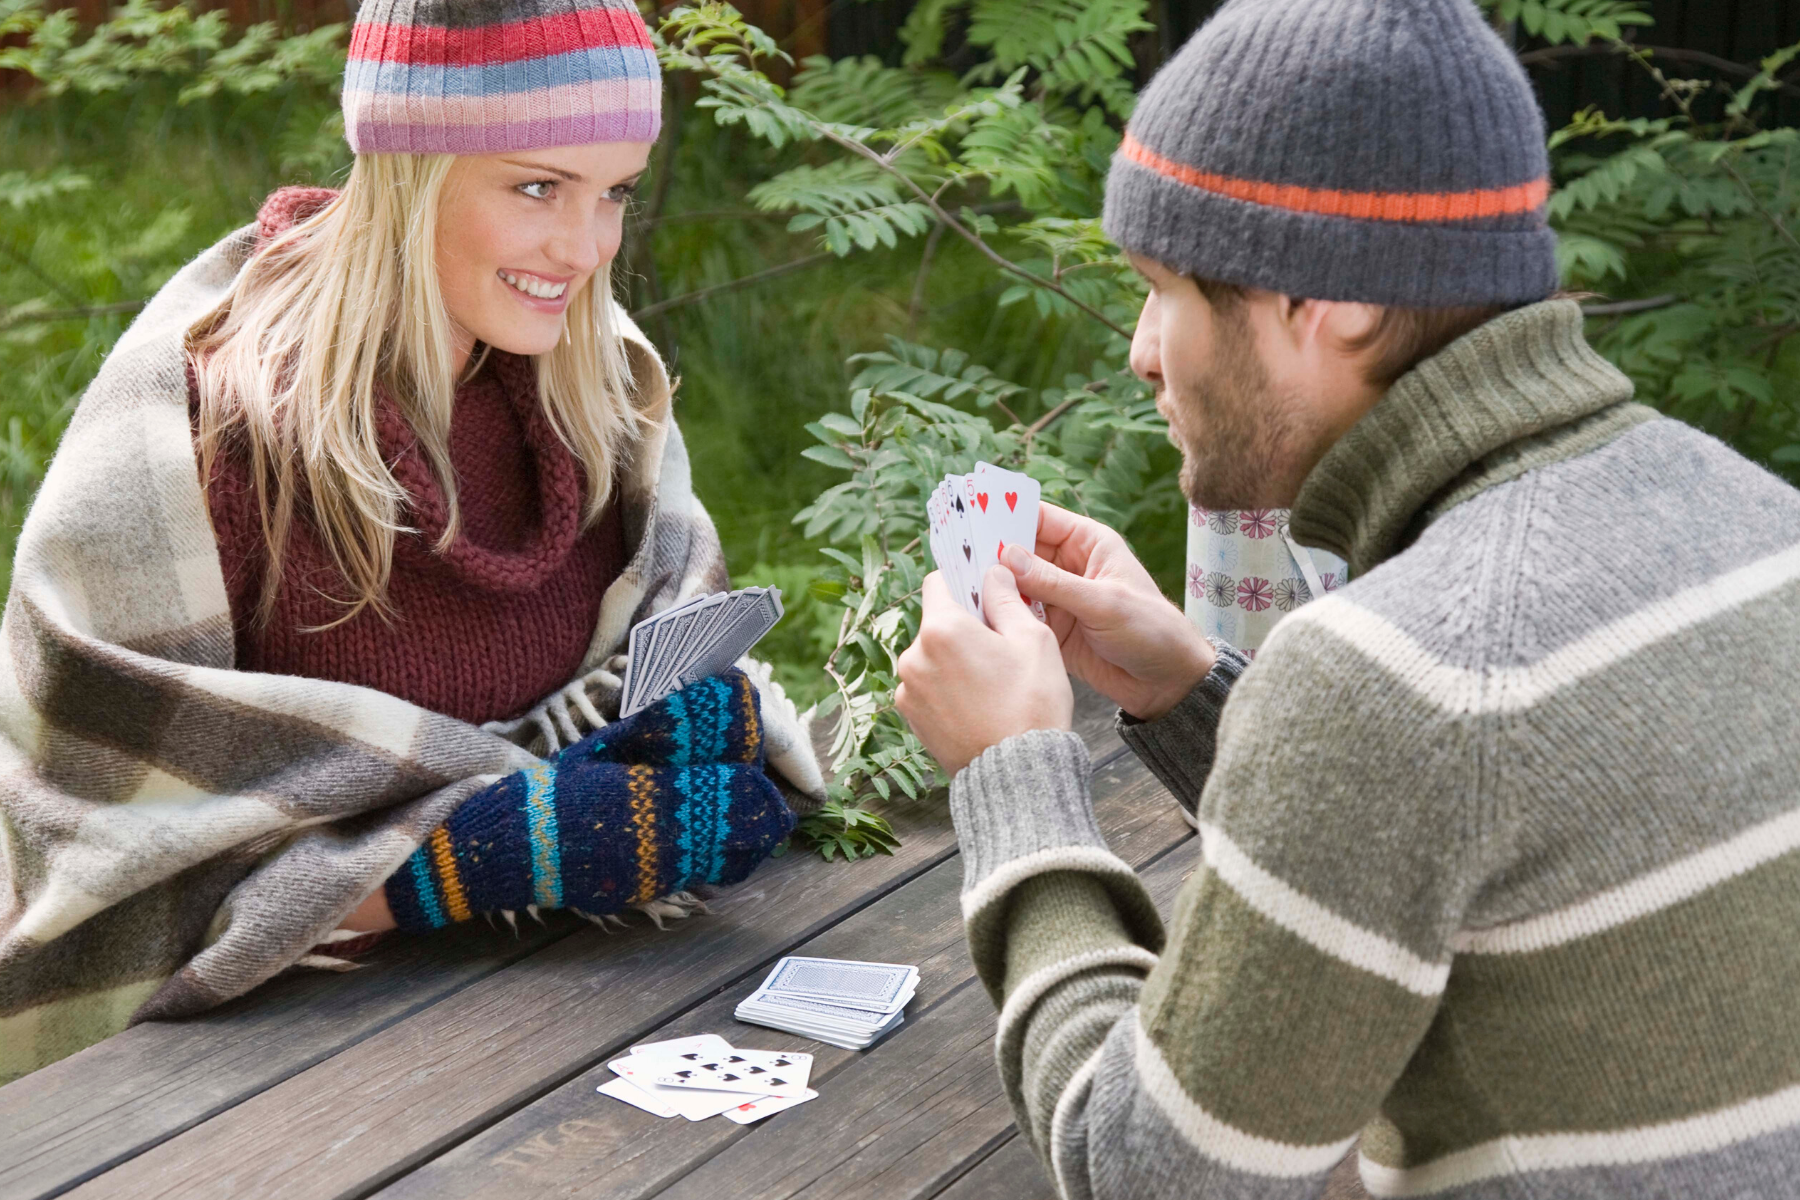 If you are looking for the best card games for two people then look no further because we have a great list right here for you with the best card games.